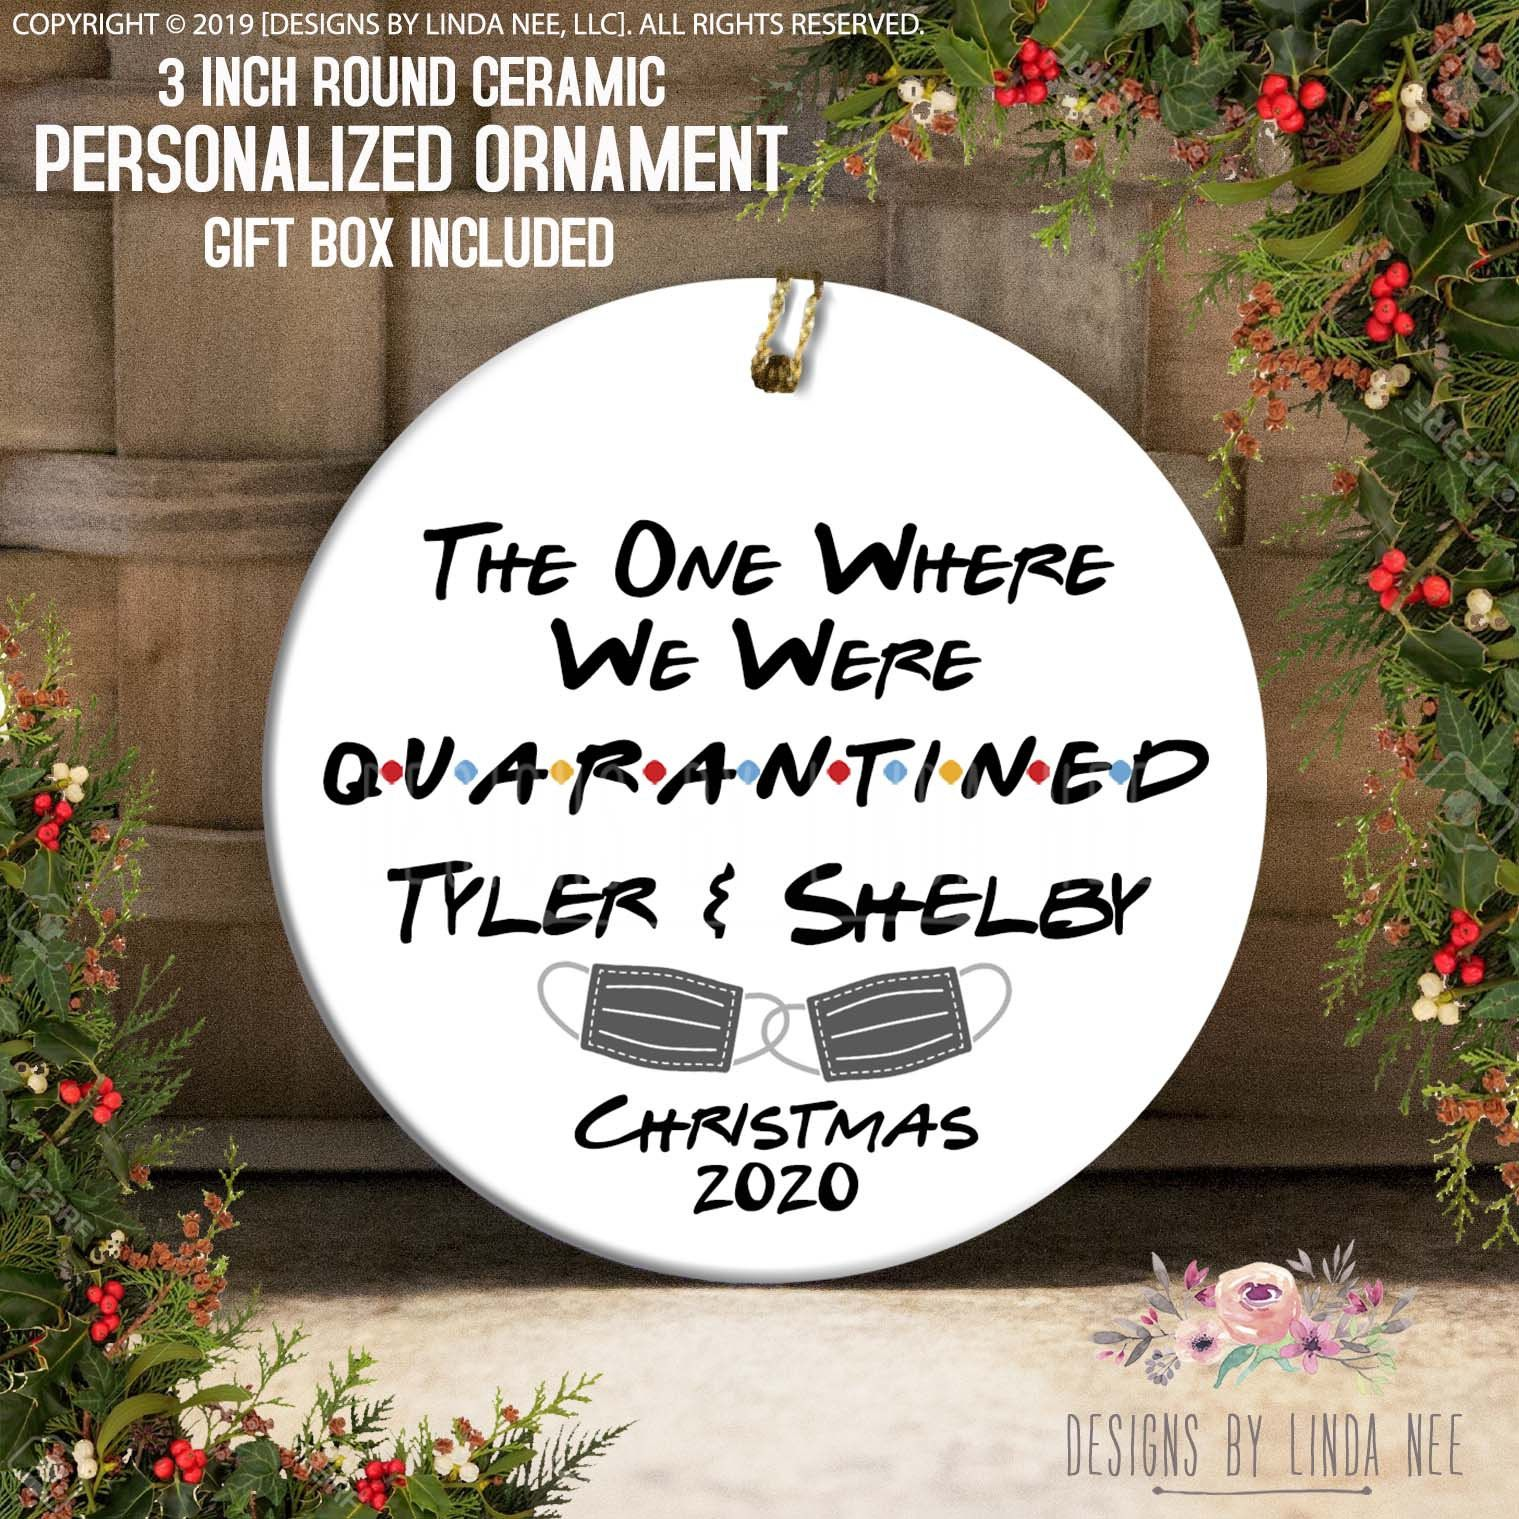 Christmas 2020 The One Where We Were Quarantined Ornament Etsy In 2020 Friends Tv Show Couple Gifts Friends Tv